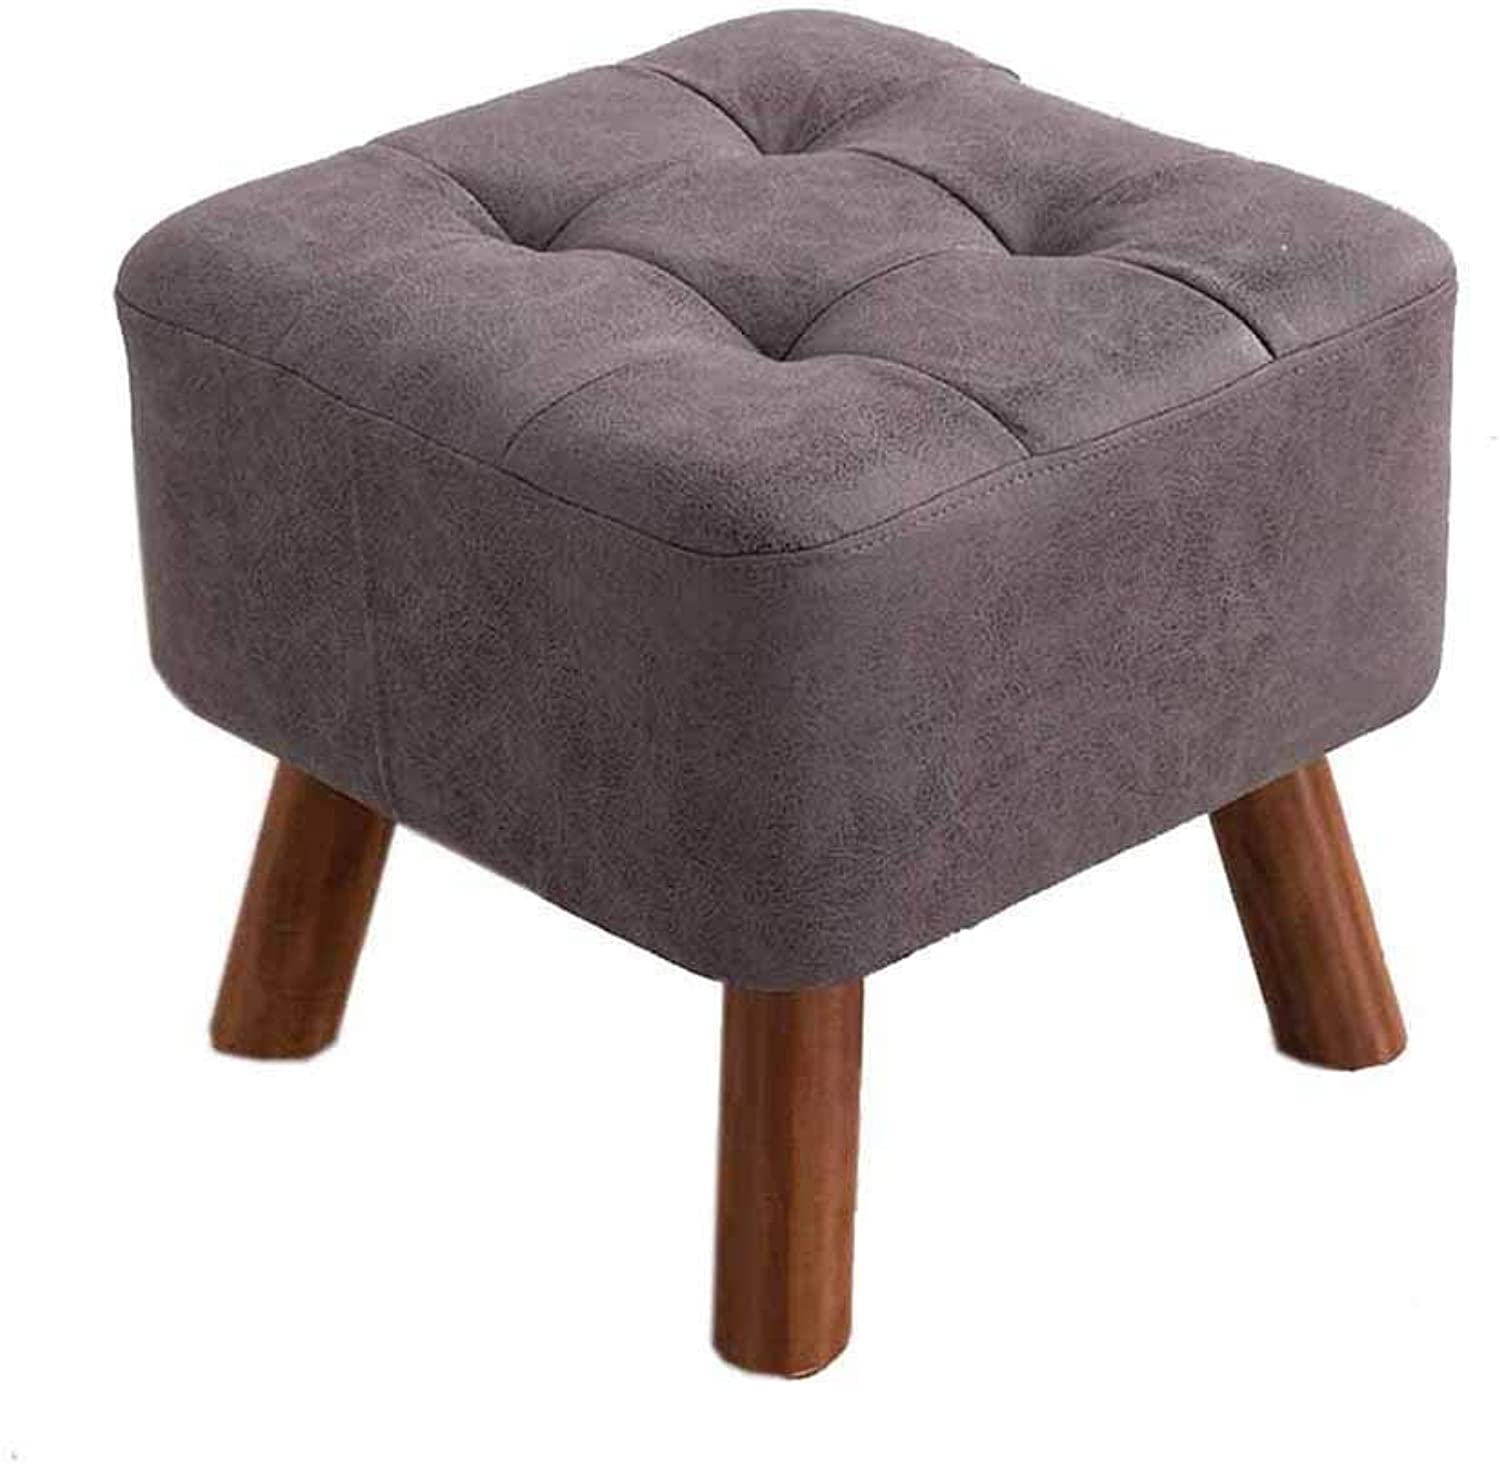 Footstool-shoes Bench Solid Wood Technology Cloth Living Room for Multiple Purposes JINRONG (color   B)